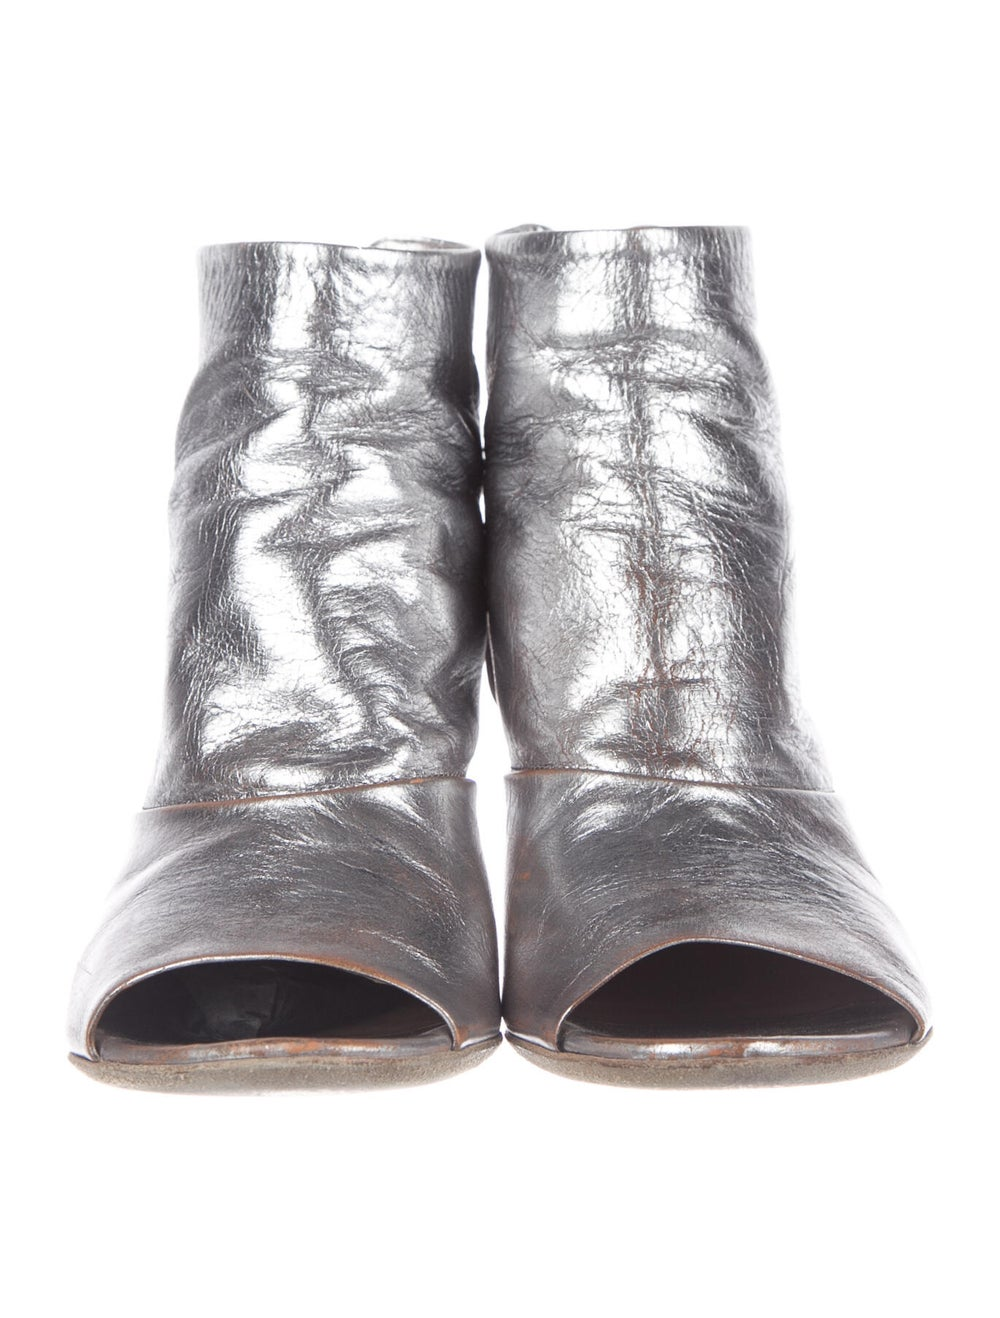 Marsèll Signature Logo Leather Boots Metallic - image 3